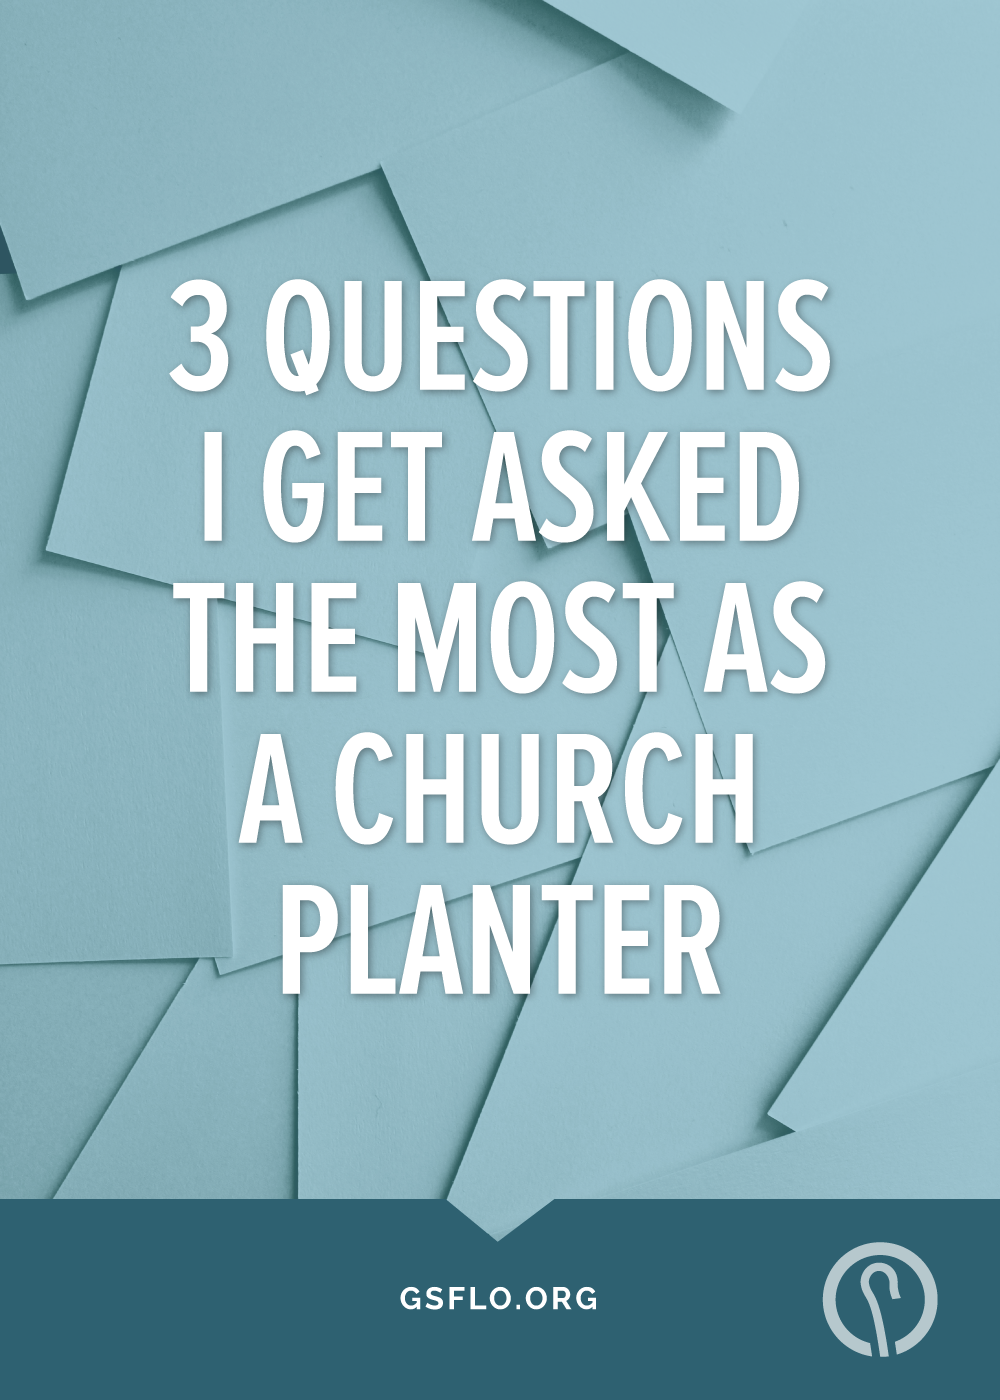 3 Questions I Get Asked the Most as a Church Planter - Good Shepherd Presbyterian Church - Florence, SC